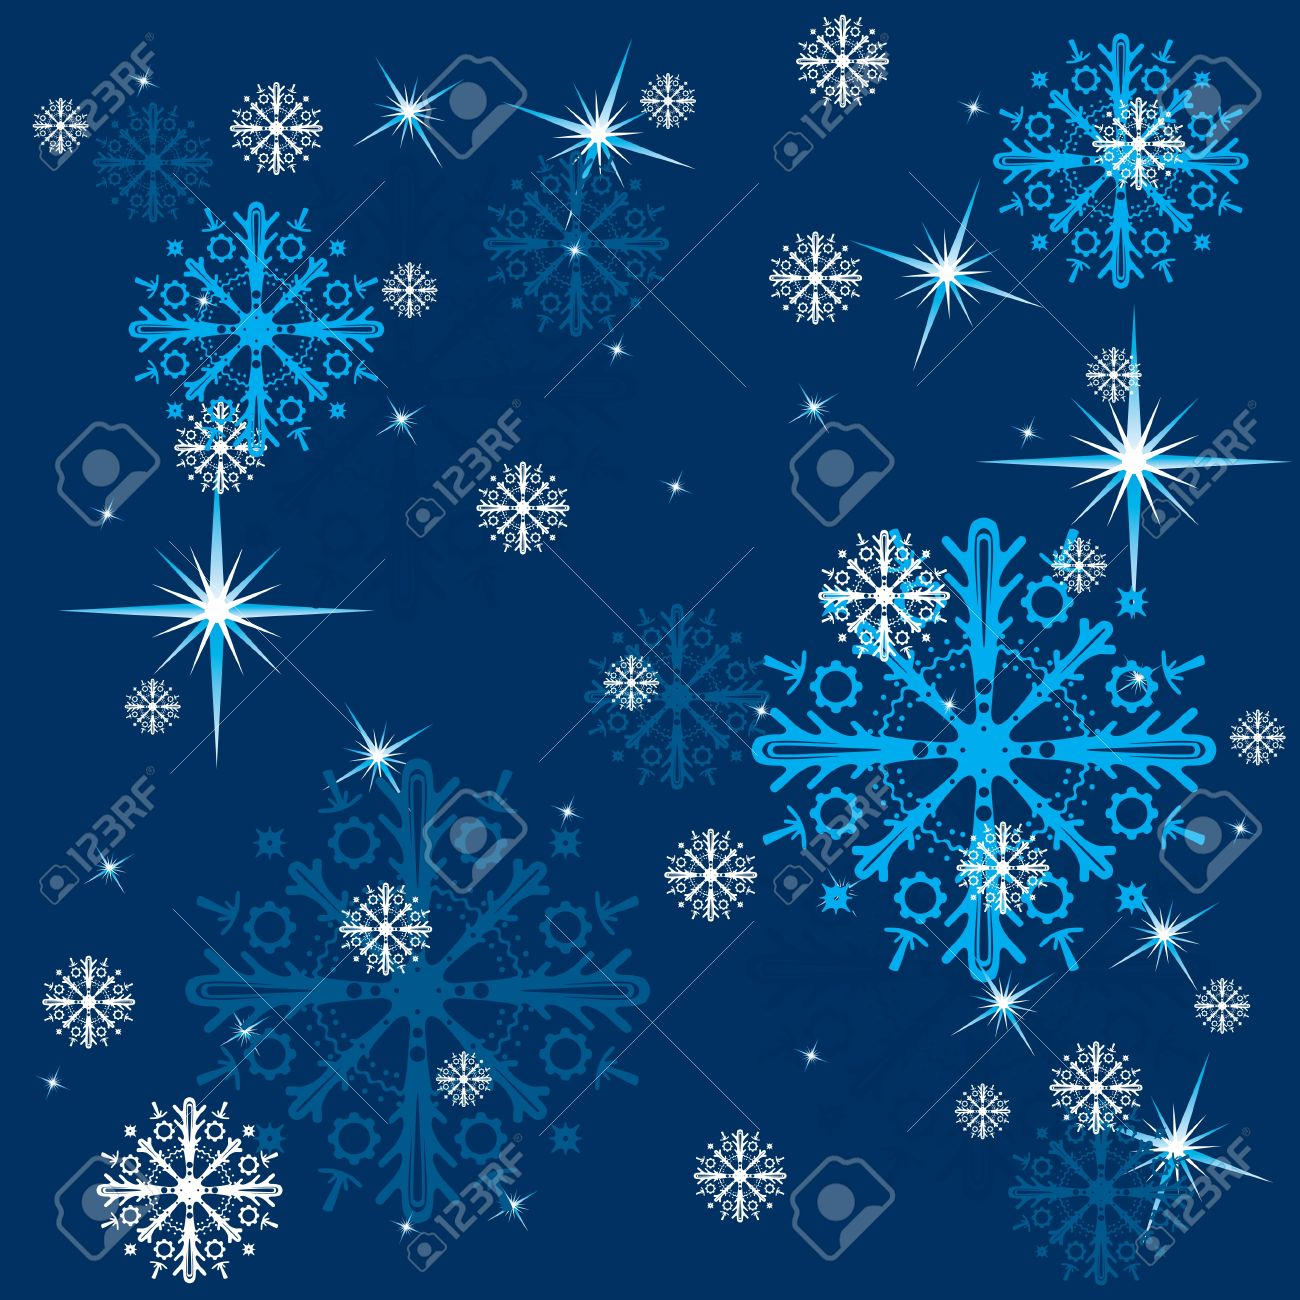 blue winter background with snowflakes Stock Vector - 16401922